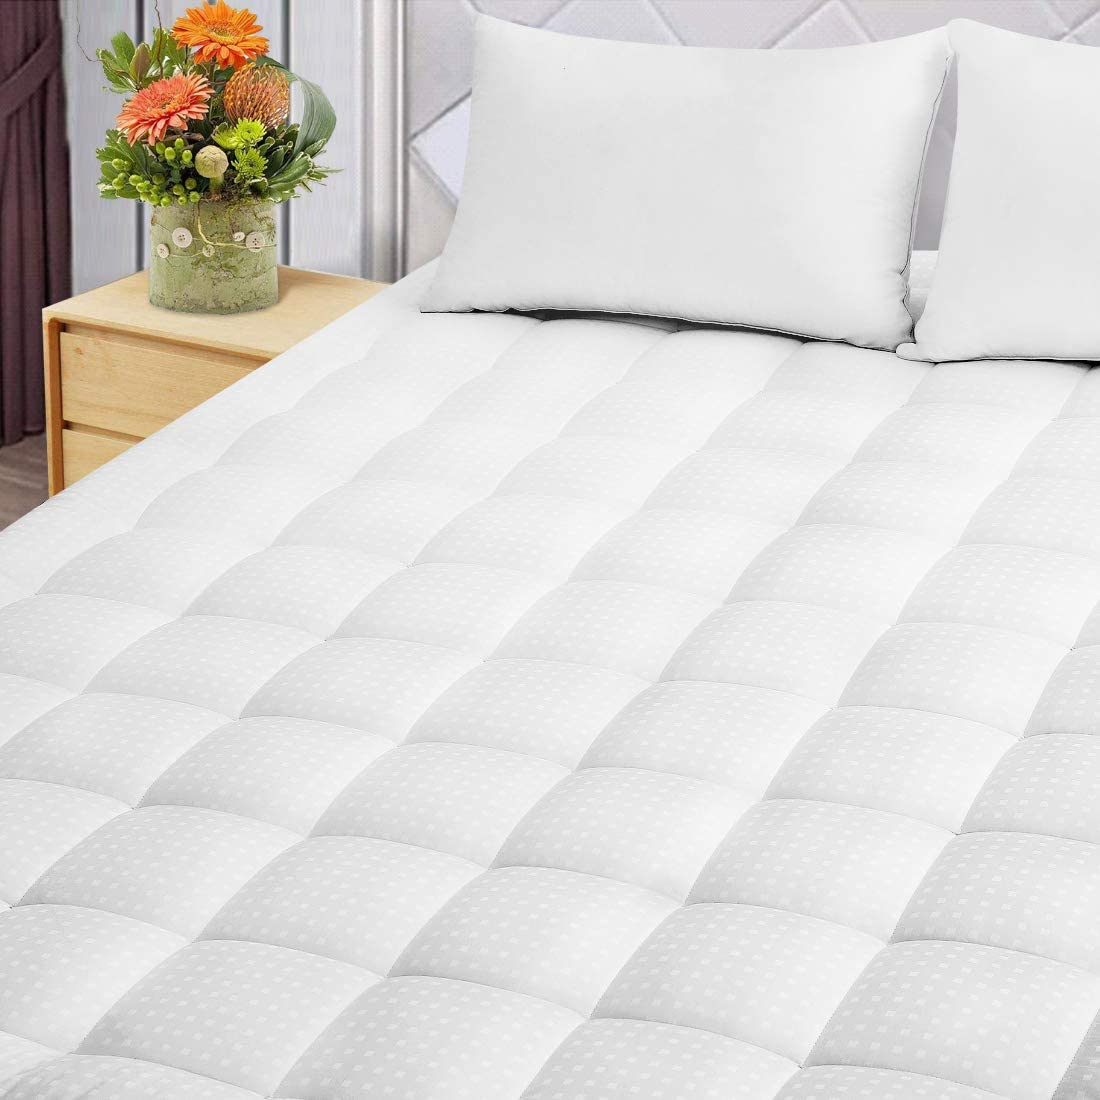 Starcast Mattress Topper Queen - Cooling Mattress Pad Cover - 300 TC Cotton Bed Topper- Deep Pocket Down Alternative Quilted Mattress Pads(1 Inch,Queen)